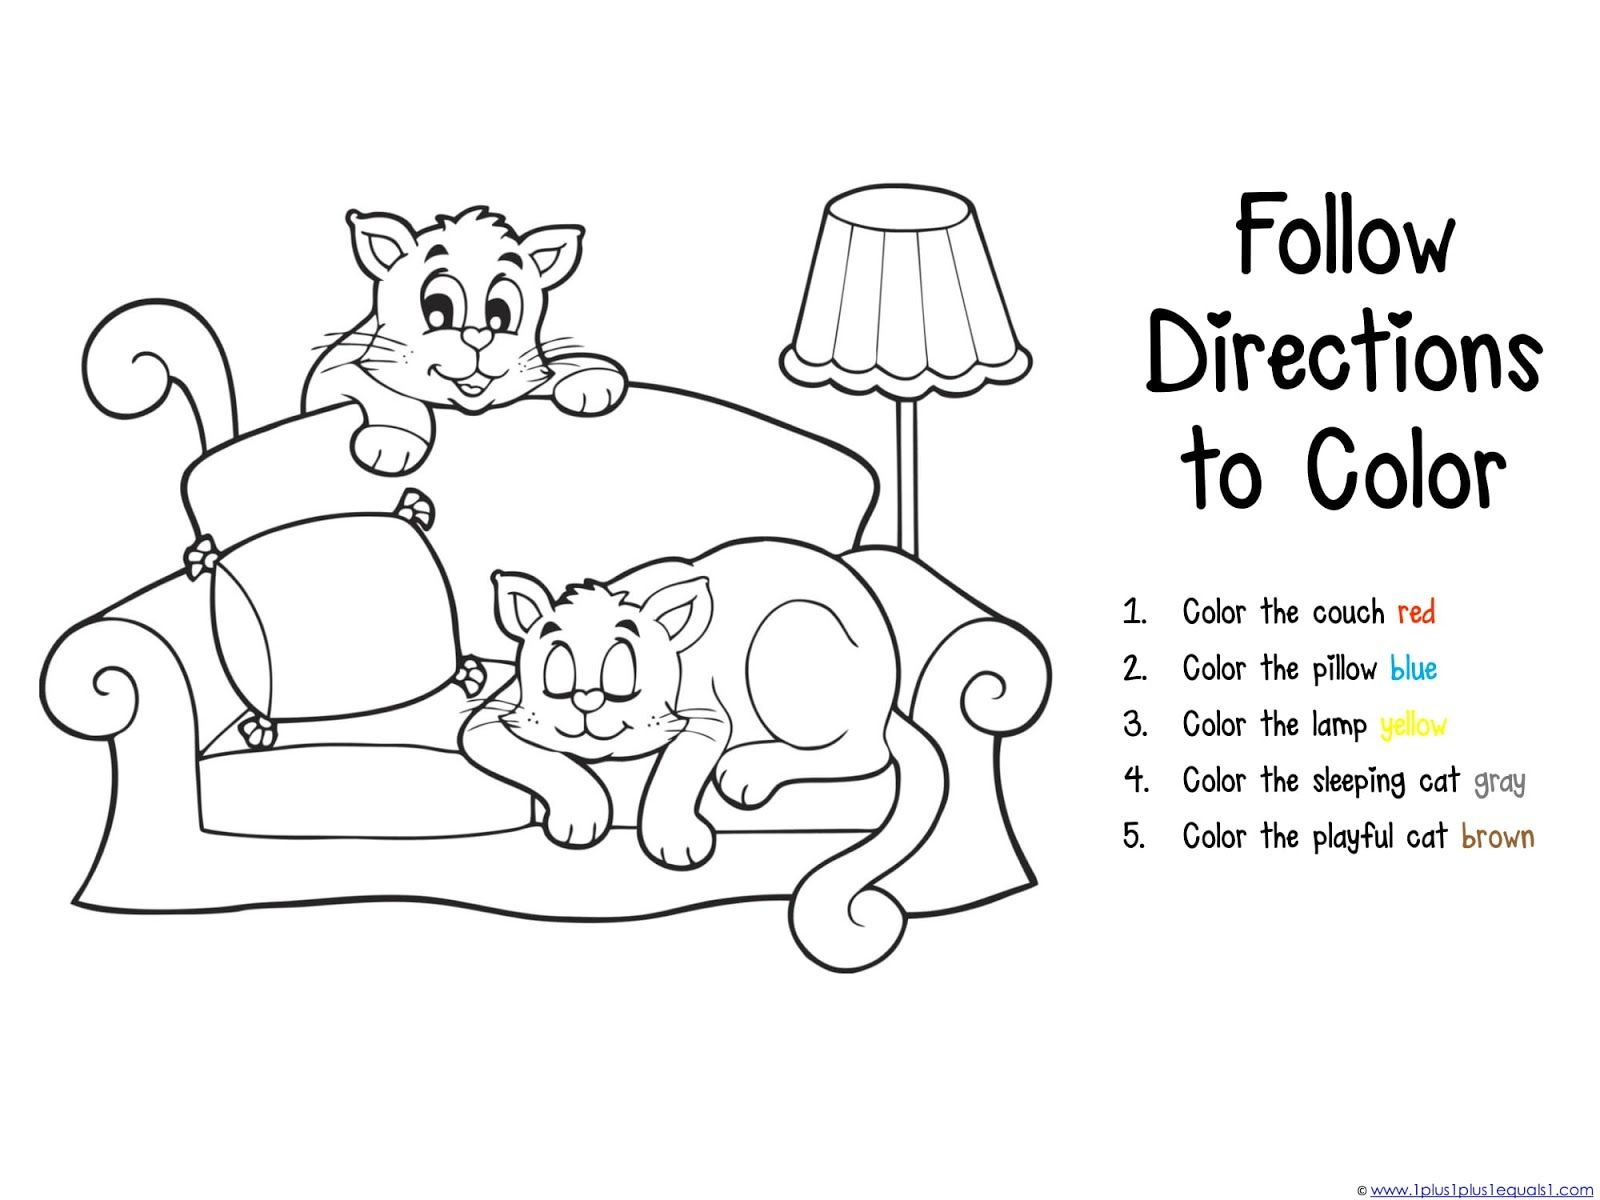 Coloring Pages Dog And Cats For Preschool